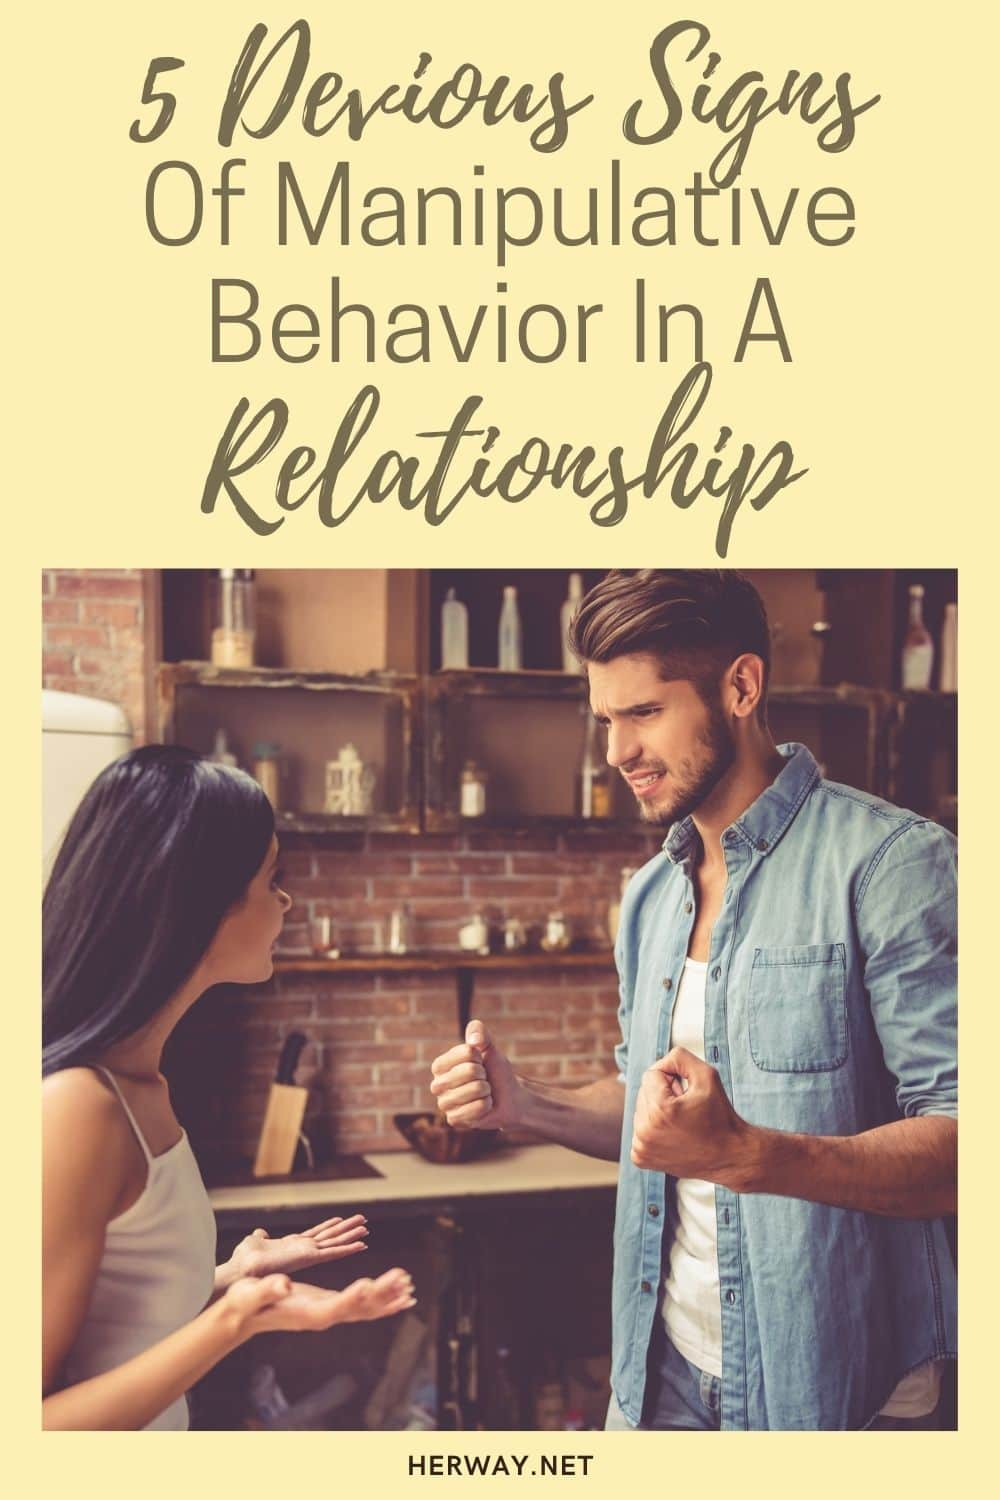 5 Devious Signs Of Manipulative Behavior In A Relationship